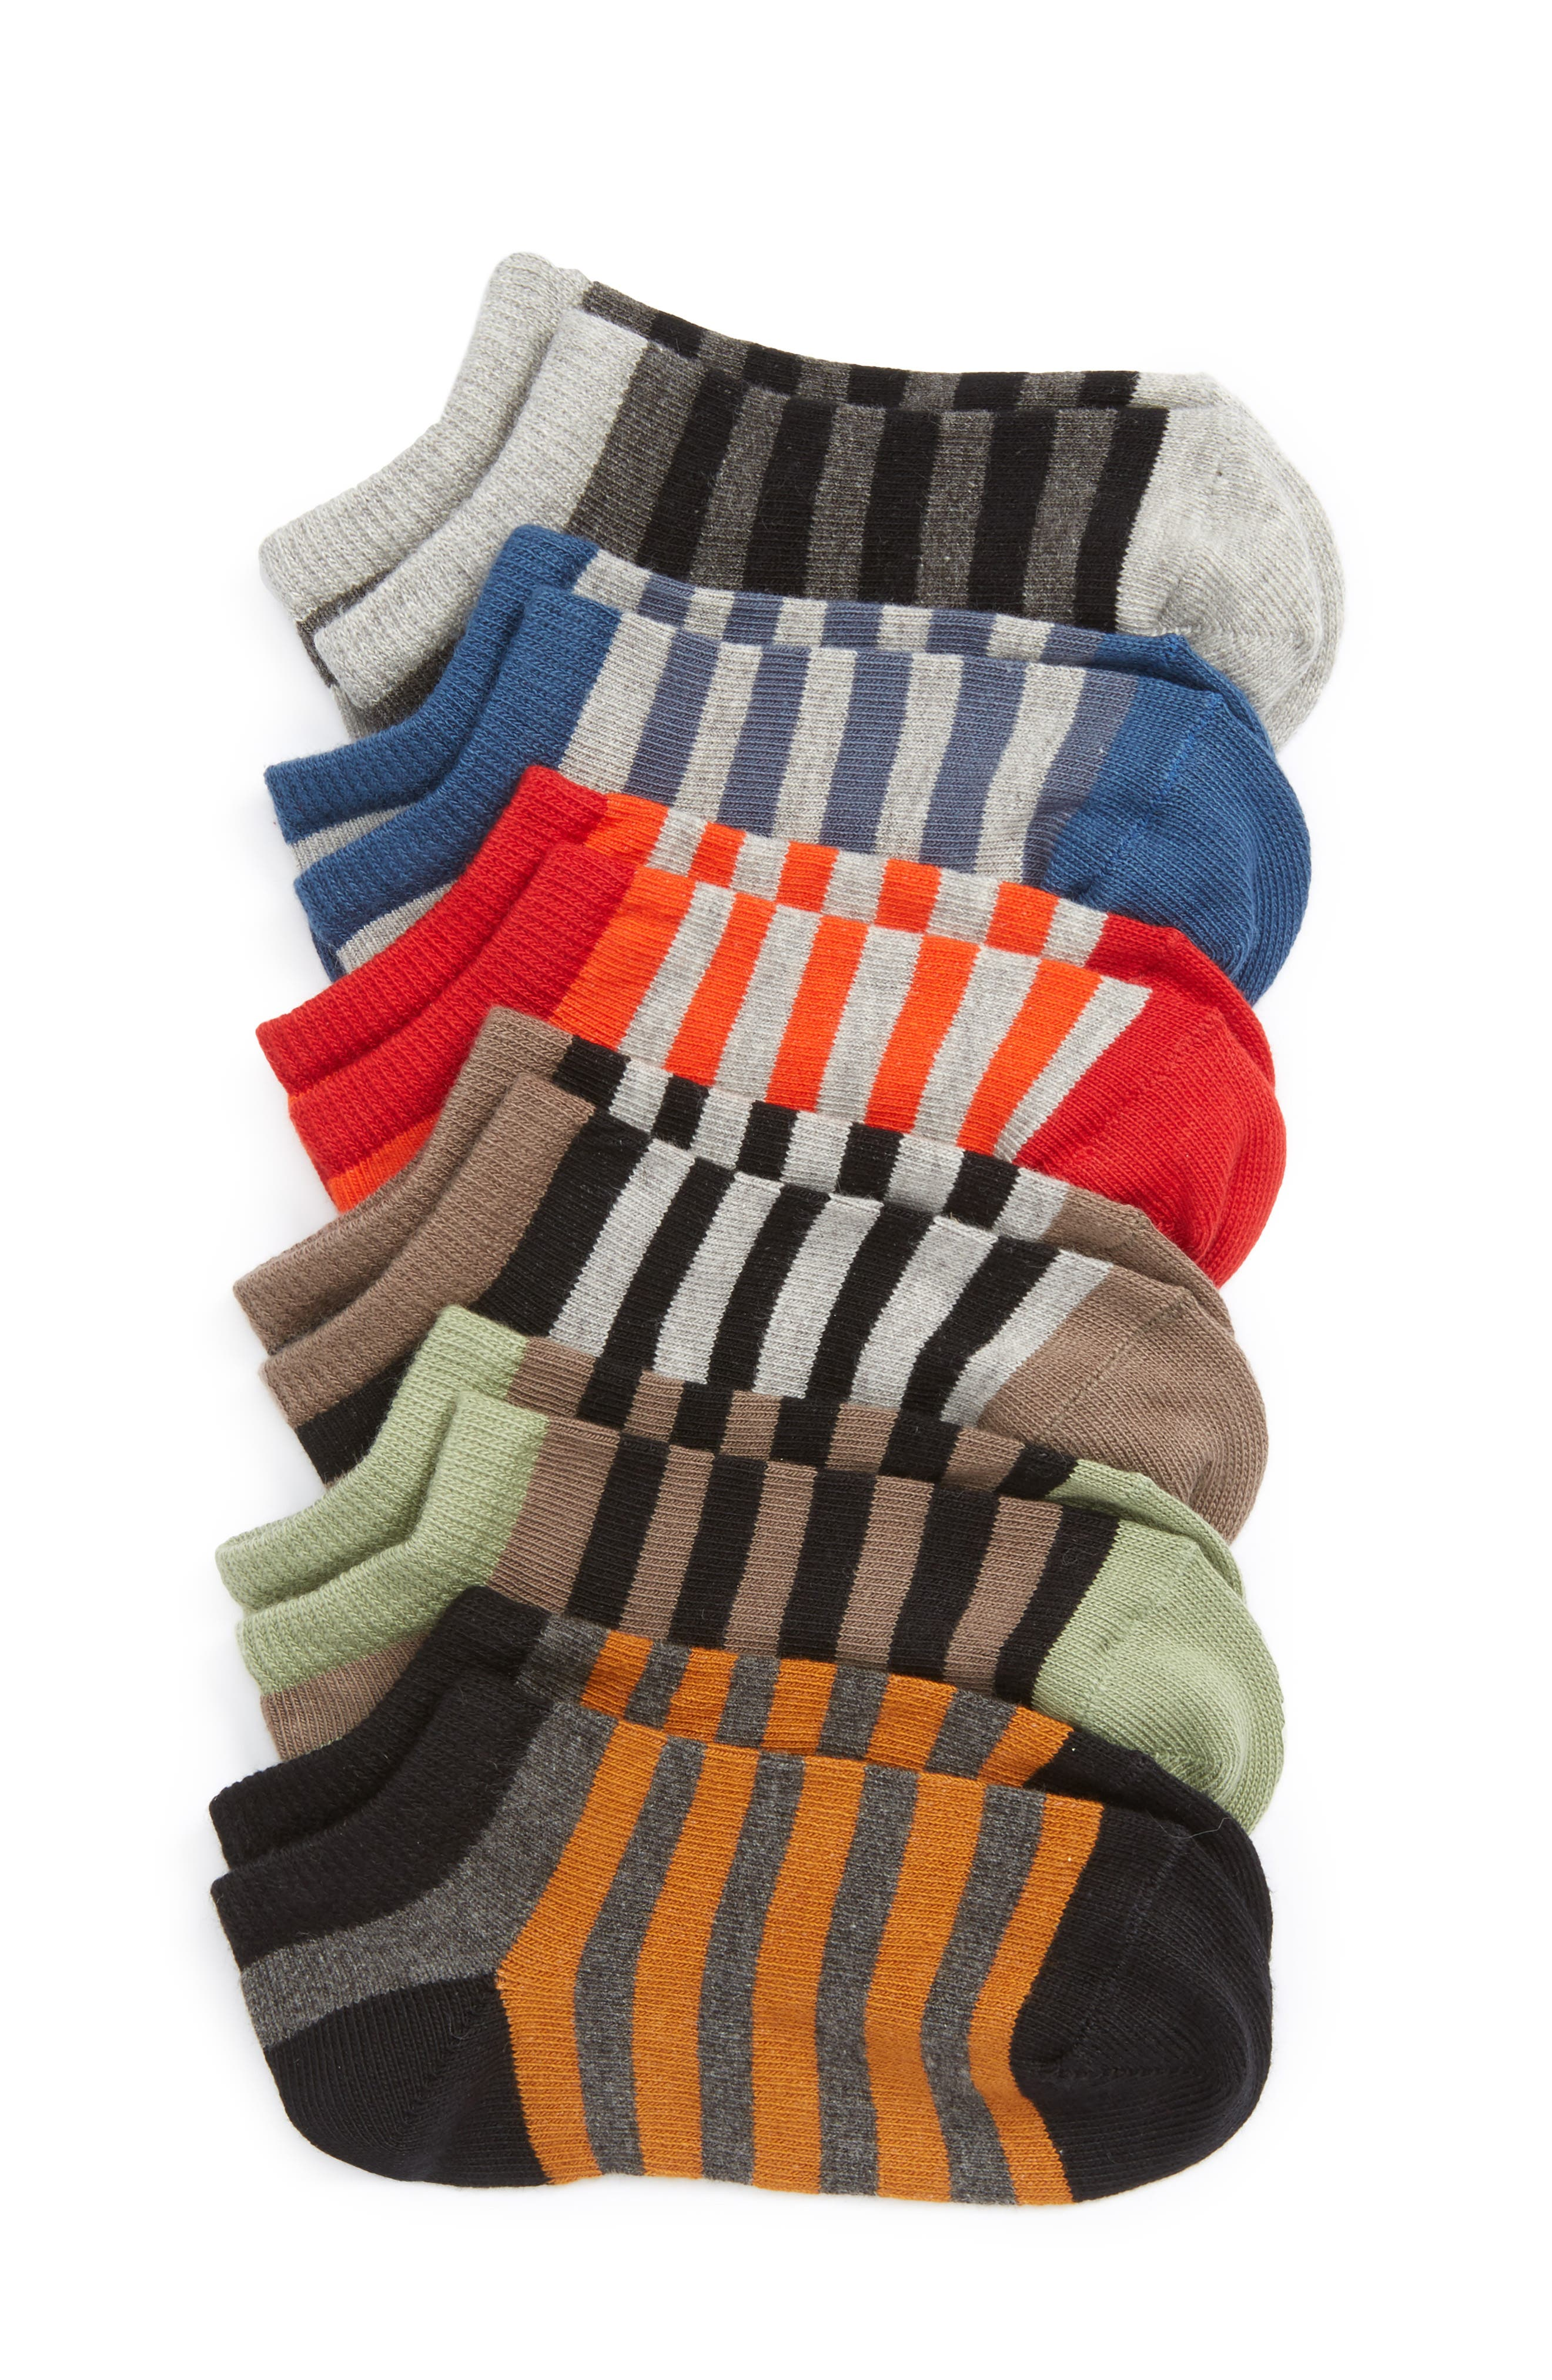 Assorted 6-Pack No-Show Socks,                             Main thumbnail 1, color,                             450